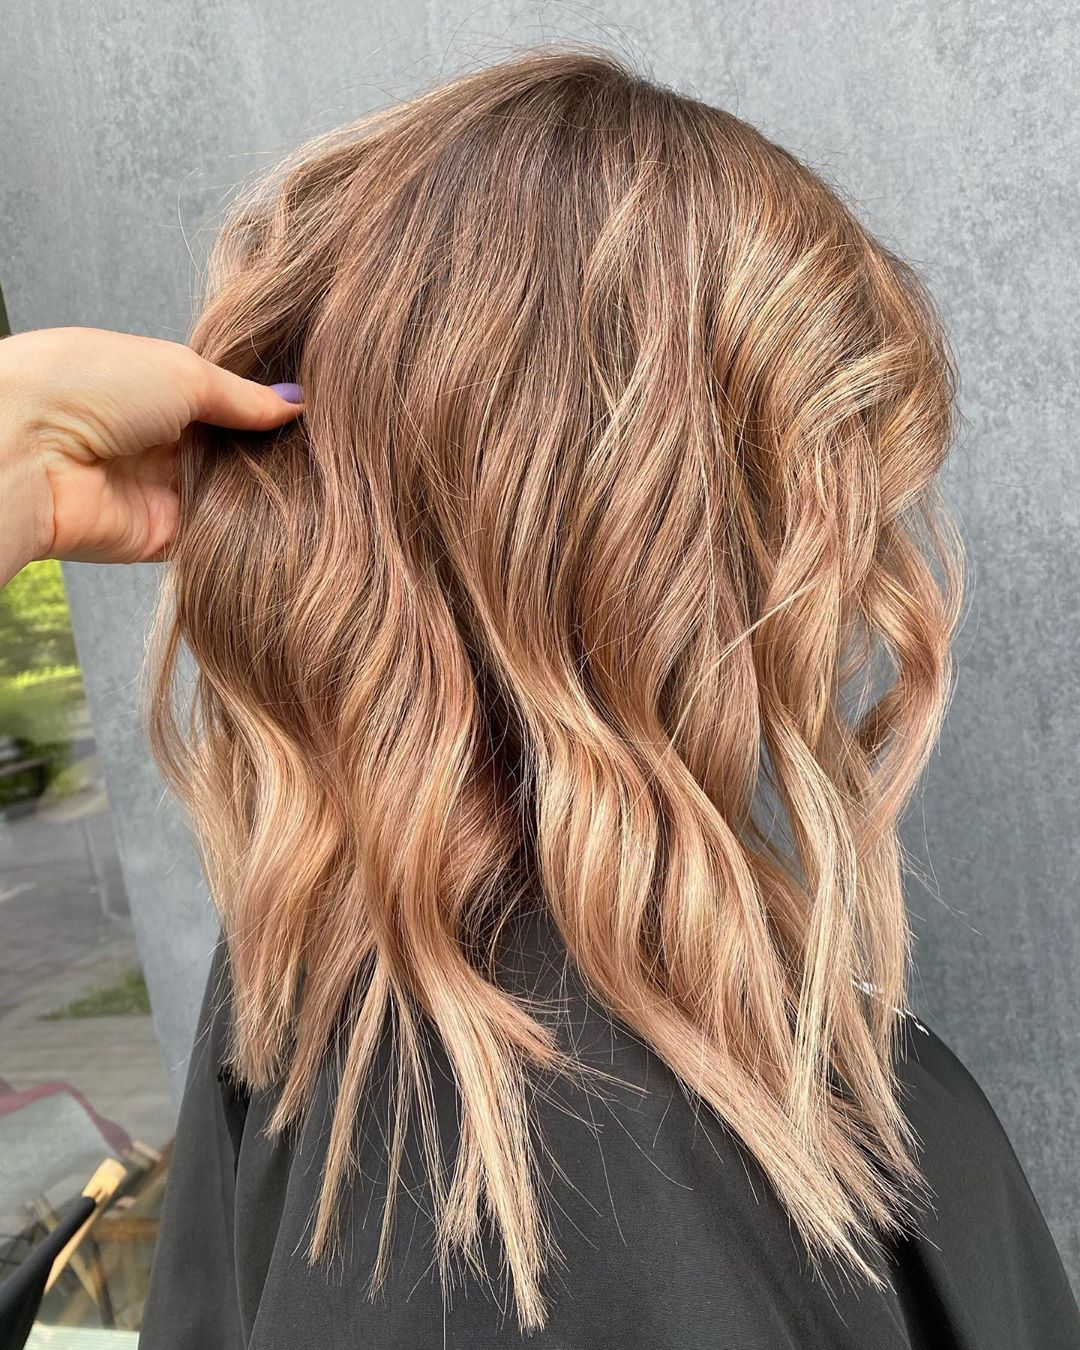 If you have Natural Brown Hair then give this hair color a try! If you don't want to damage your own hair dues to hair treatment then give Indique Hair Extensions a try for sure! #hair #haircolor #haircolorideas #blondeombre